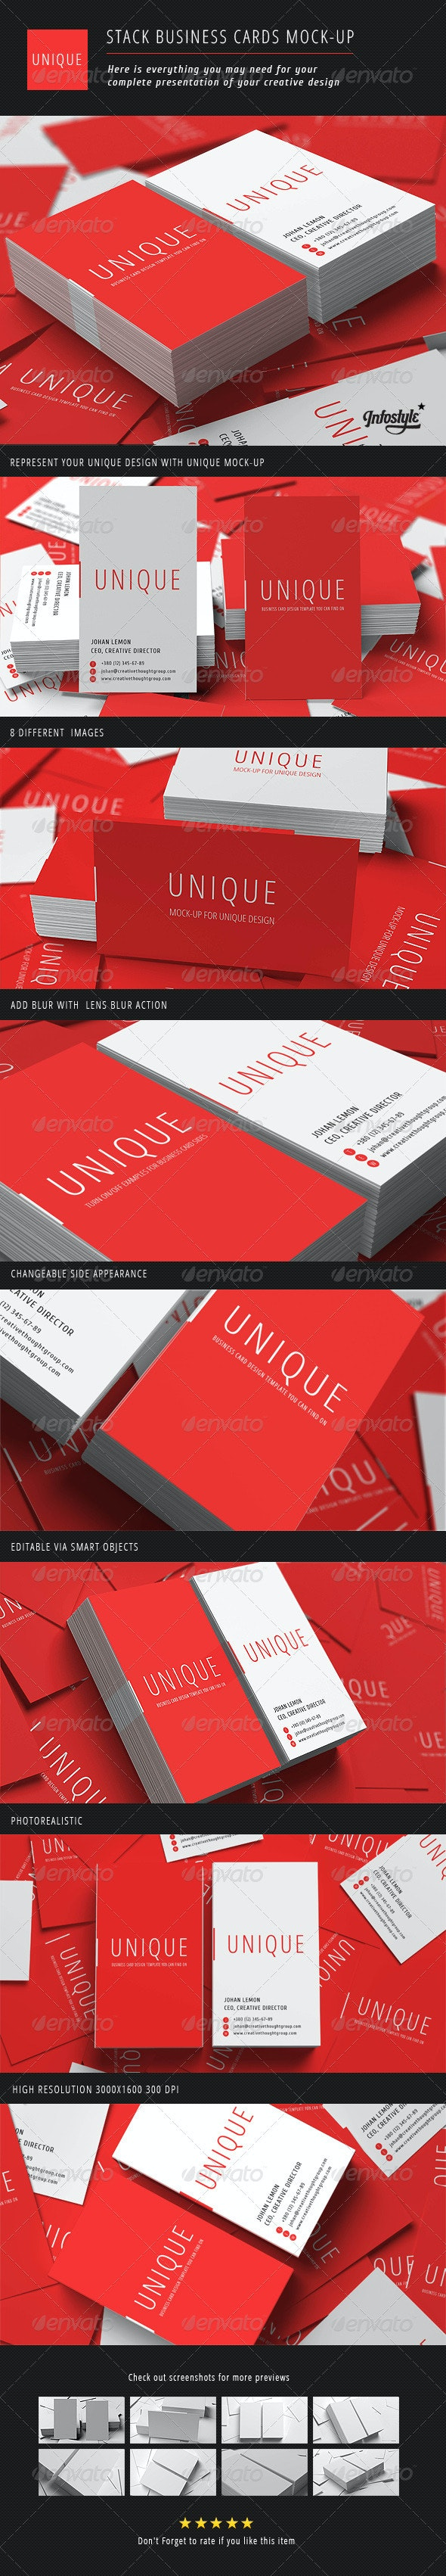 Stack Business Cards Mock-Up - Business Cards Print